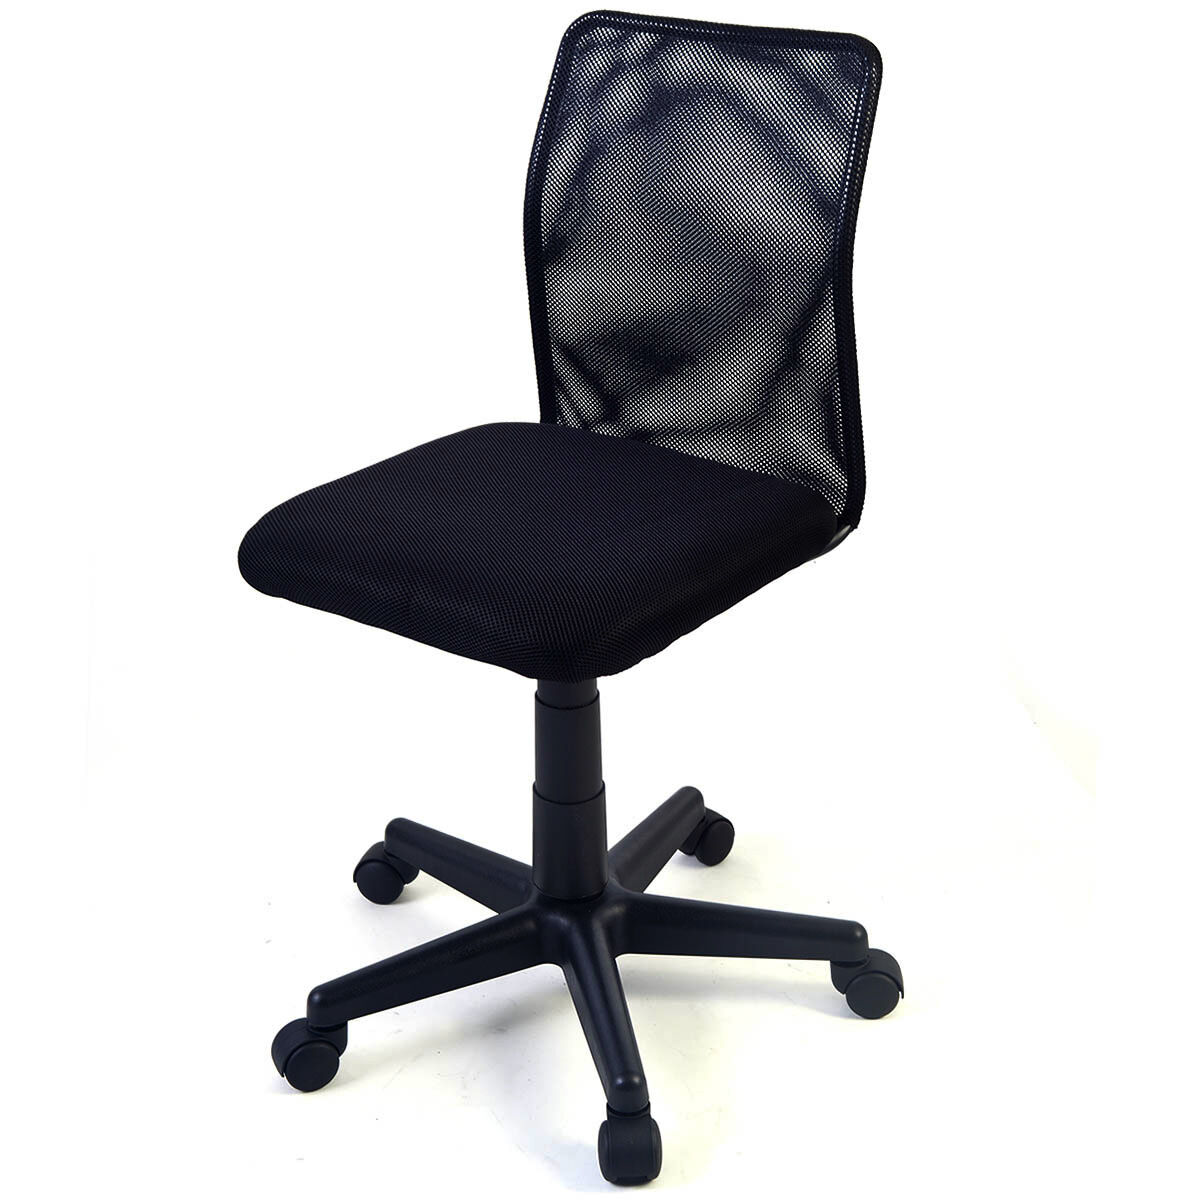 durable office chairs wedding chair covers for sale in johannesburg new mid back adjustable ergonomic mesh swivel